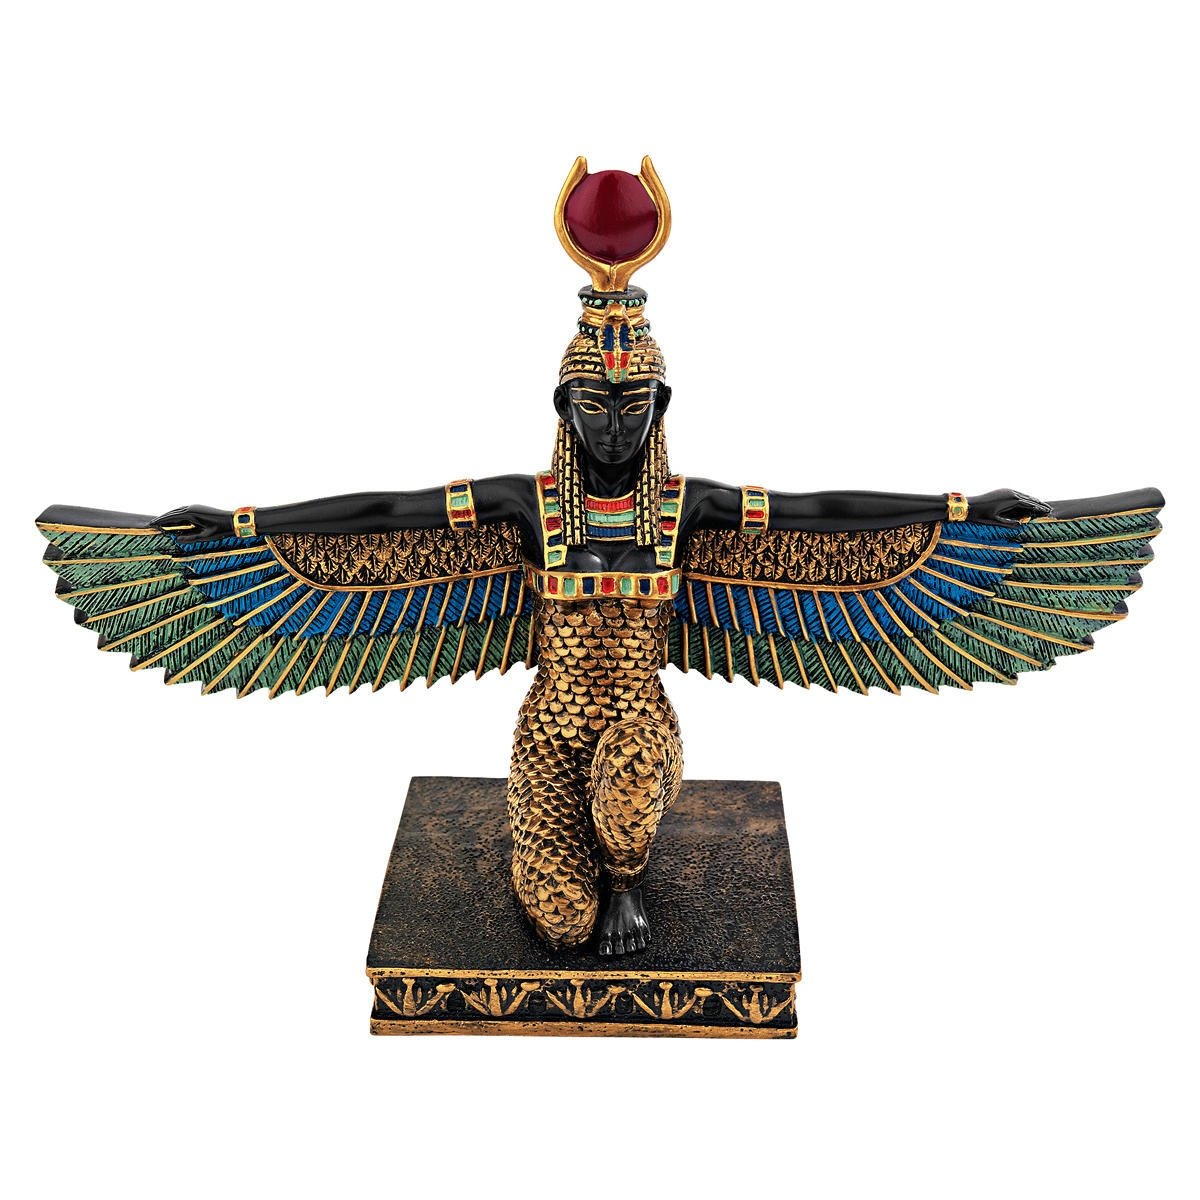 Design Toscano Isis Goddess of Beauty Egyptian Decor Statue, 23 cm, Polyresin, Full Color QL12219